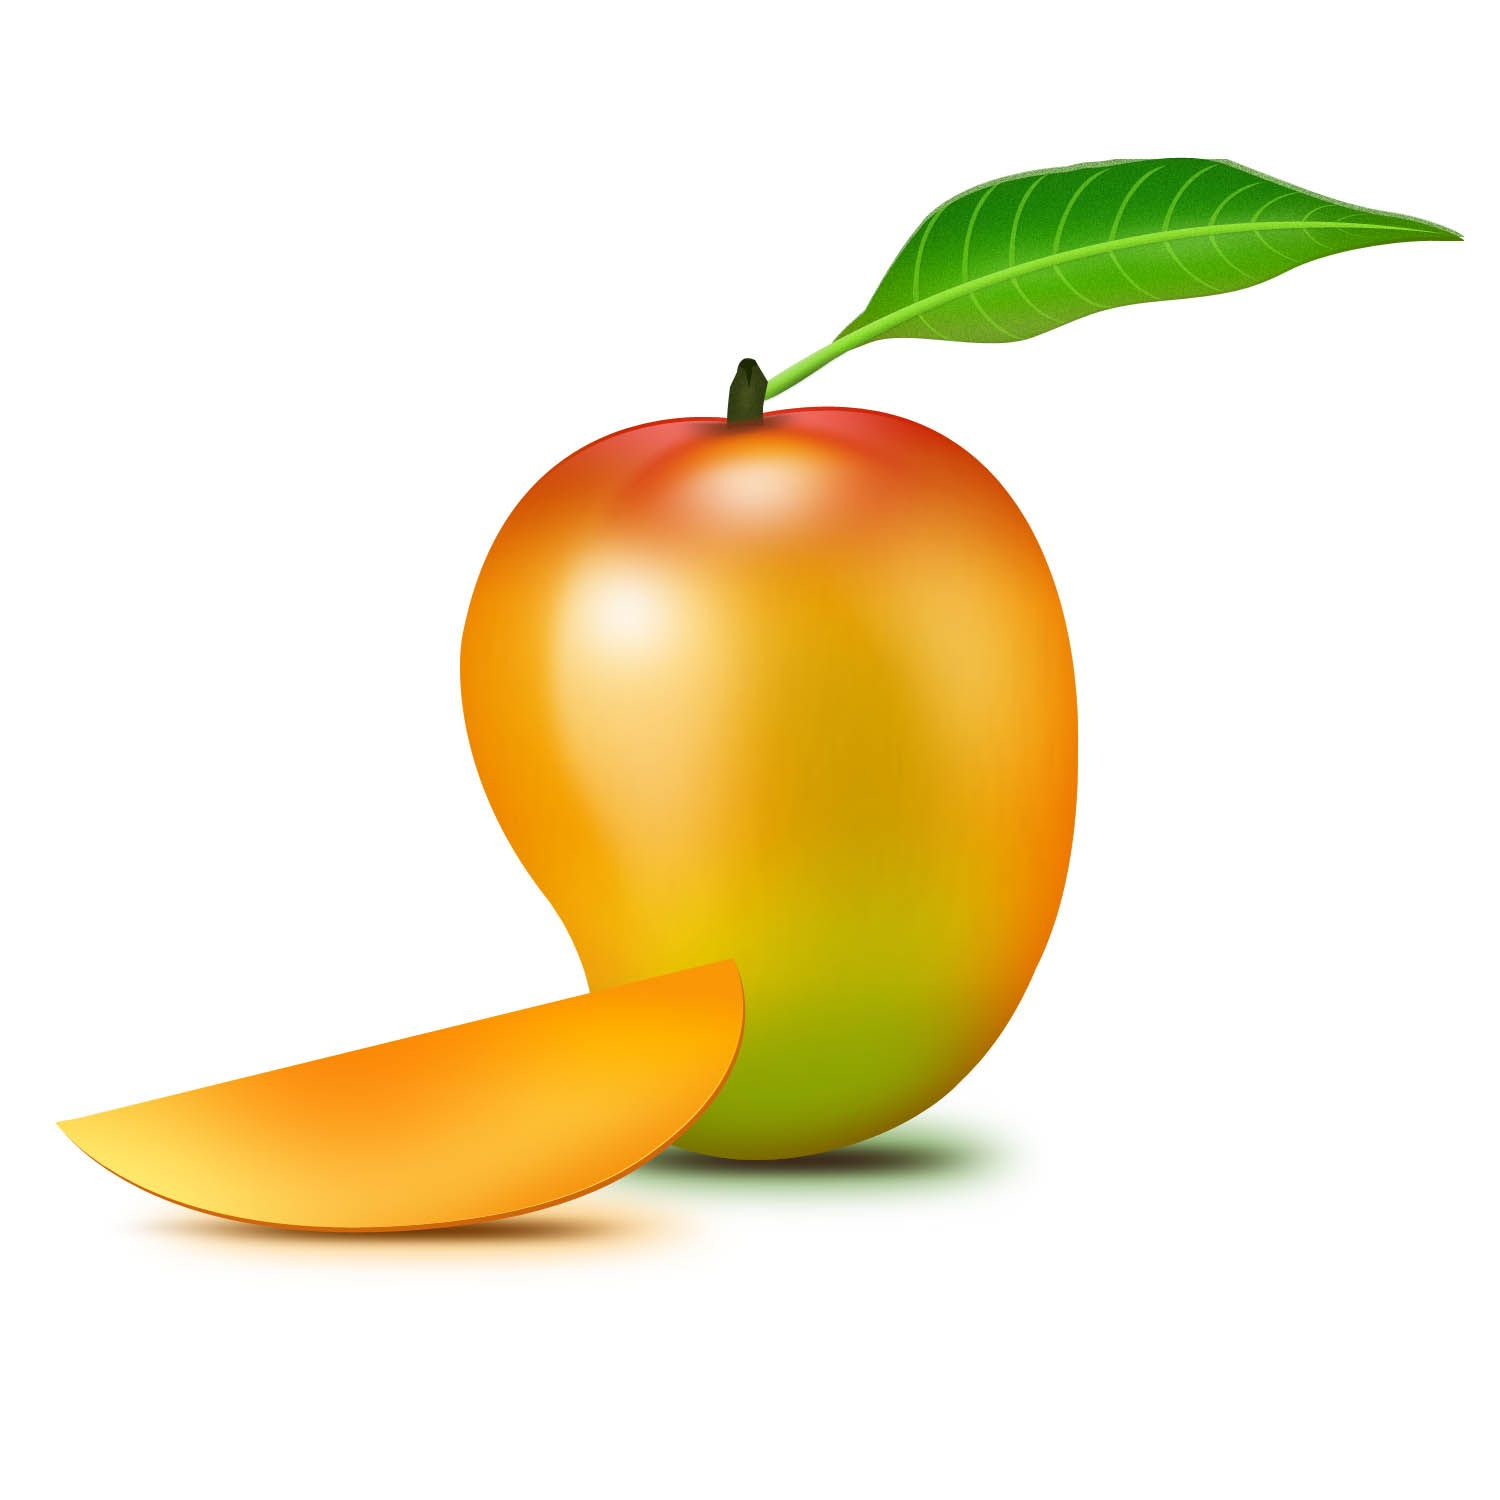 Images For > Mango Images Clip Art | YWeb Portfolio Mood Board ...